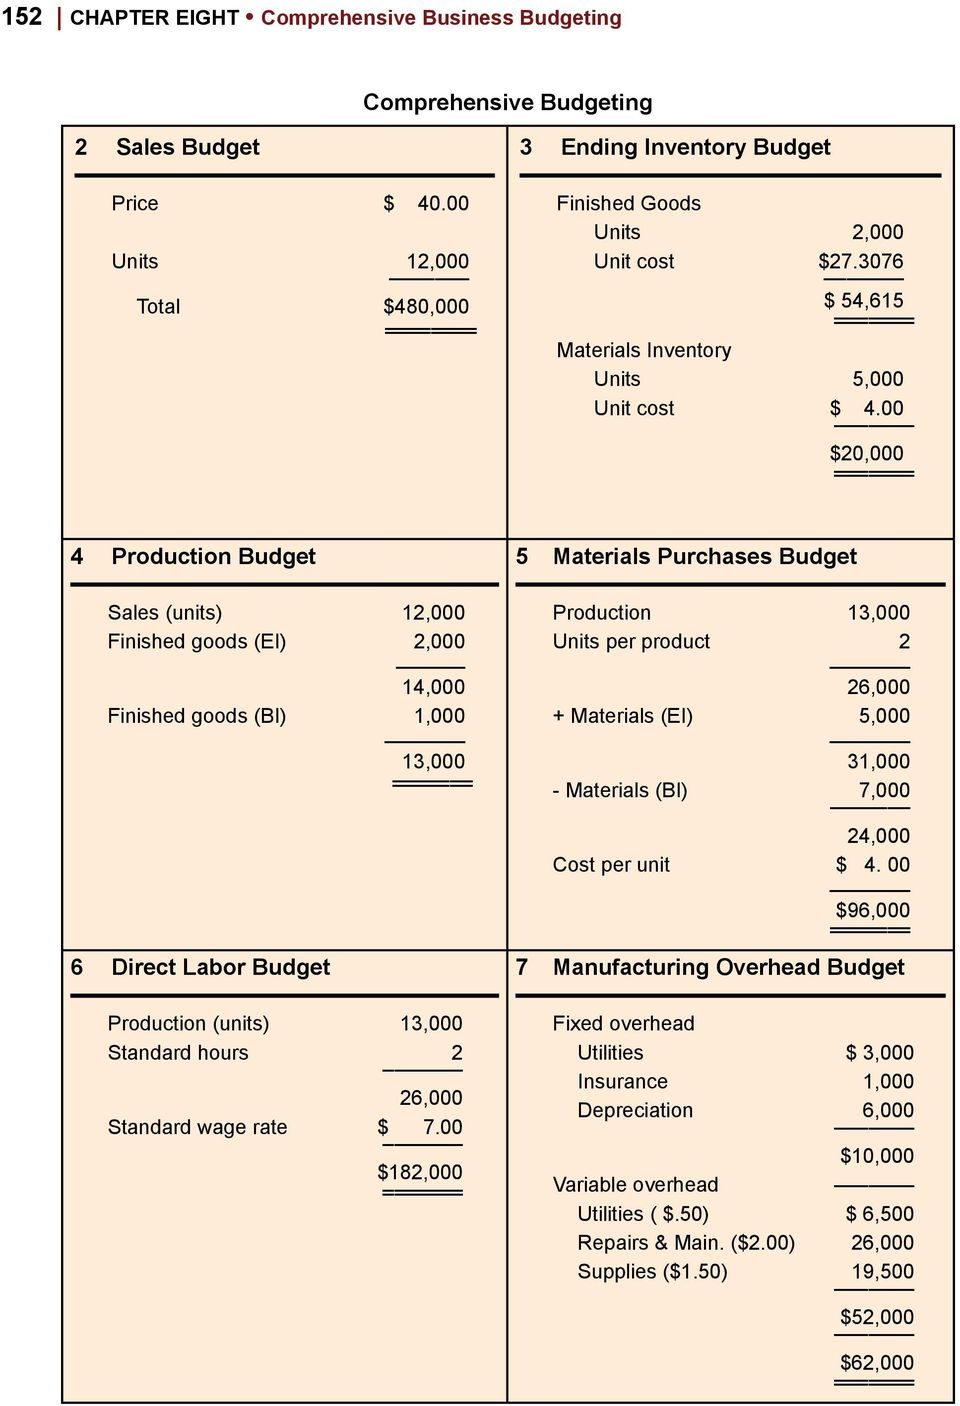 00 $20,000 4 Production Budget Sales (units) 12,000 Finished goods (EI) 2,000 14,000 Finished goods (BI) 1,000 13,000 6 Direct Labor Budget Production (units) 13,000 Standard hours 2 26,000 Standard